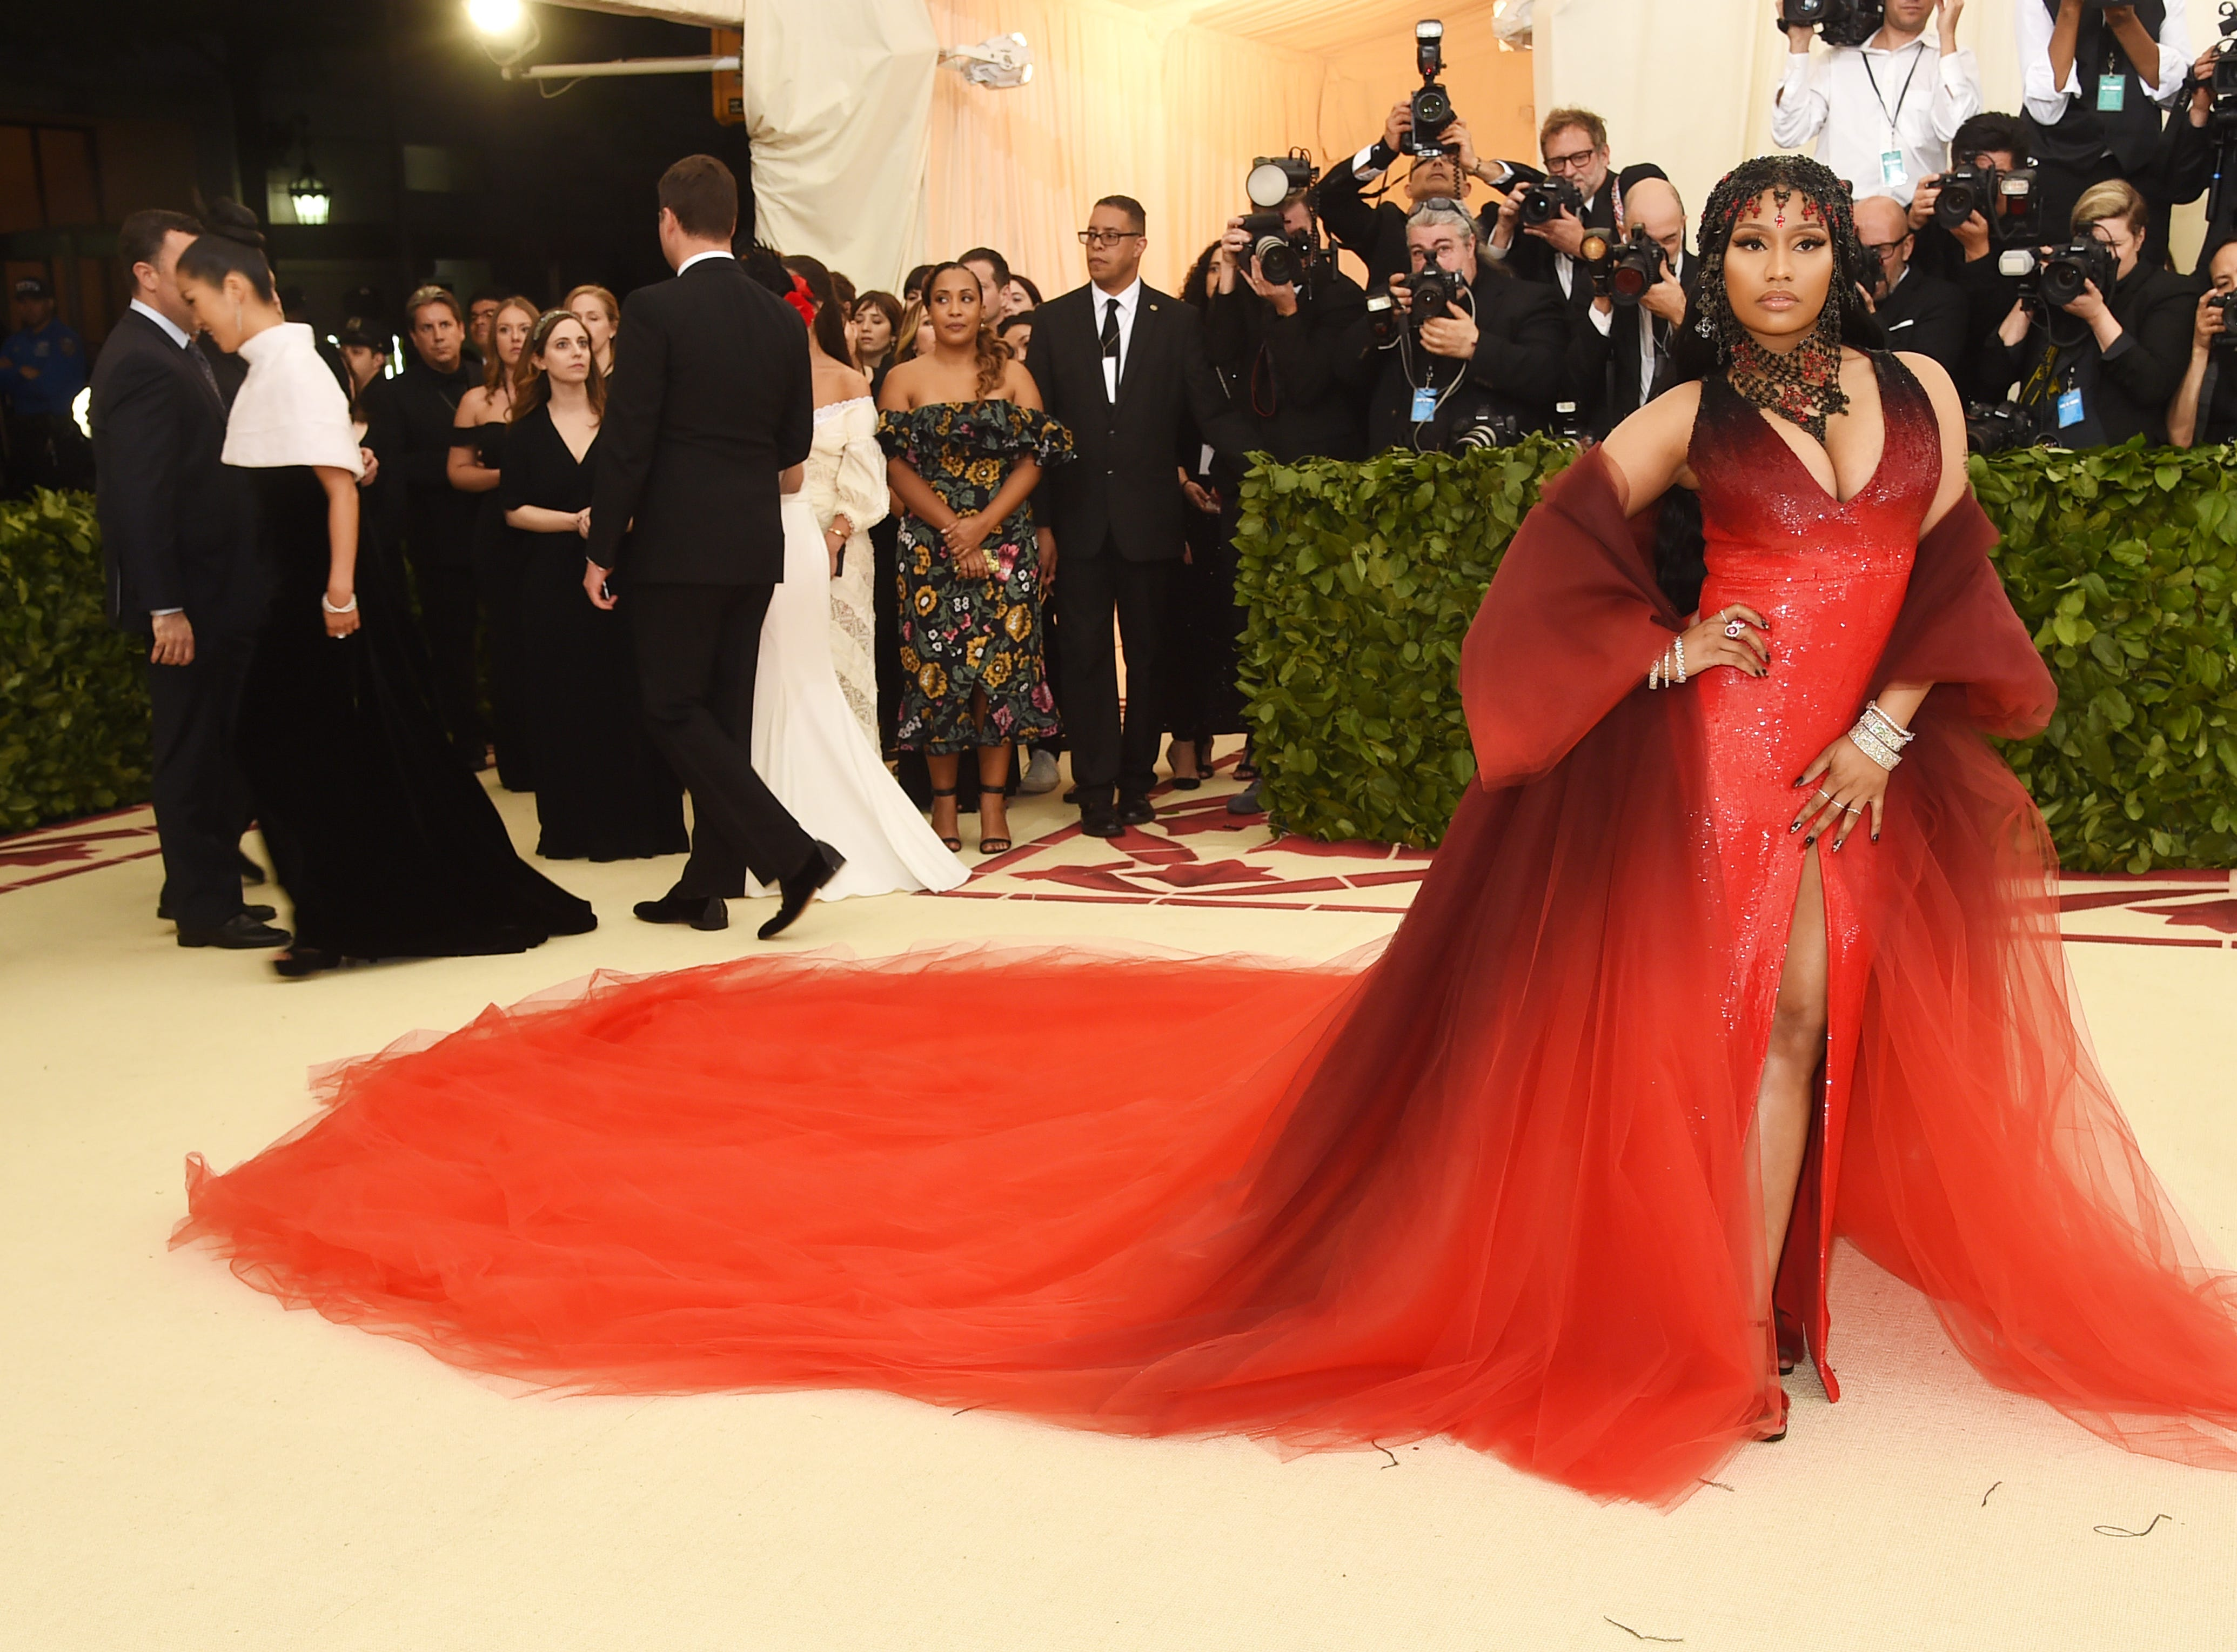 NEW YORK, NY - MAY 07:  Nicki Minaj attends the Heavenly Bodies: Fashion & The Catholic Imagination Costume Institute Gala at The Metropolitan Museum of Art on May 7, 2018 in New York City.  (Photo by Jamie McCarthy/Getty Images) ORG XMIT: 775160910 ORIG FILE ID: 955774008